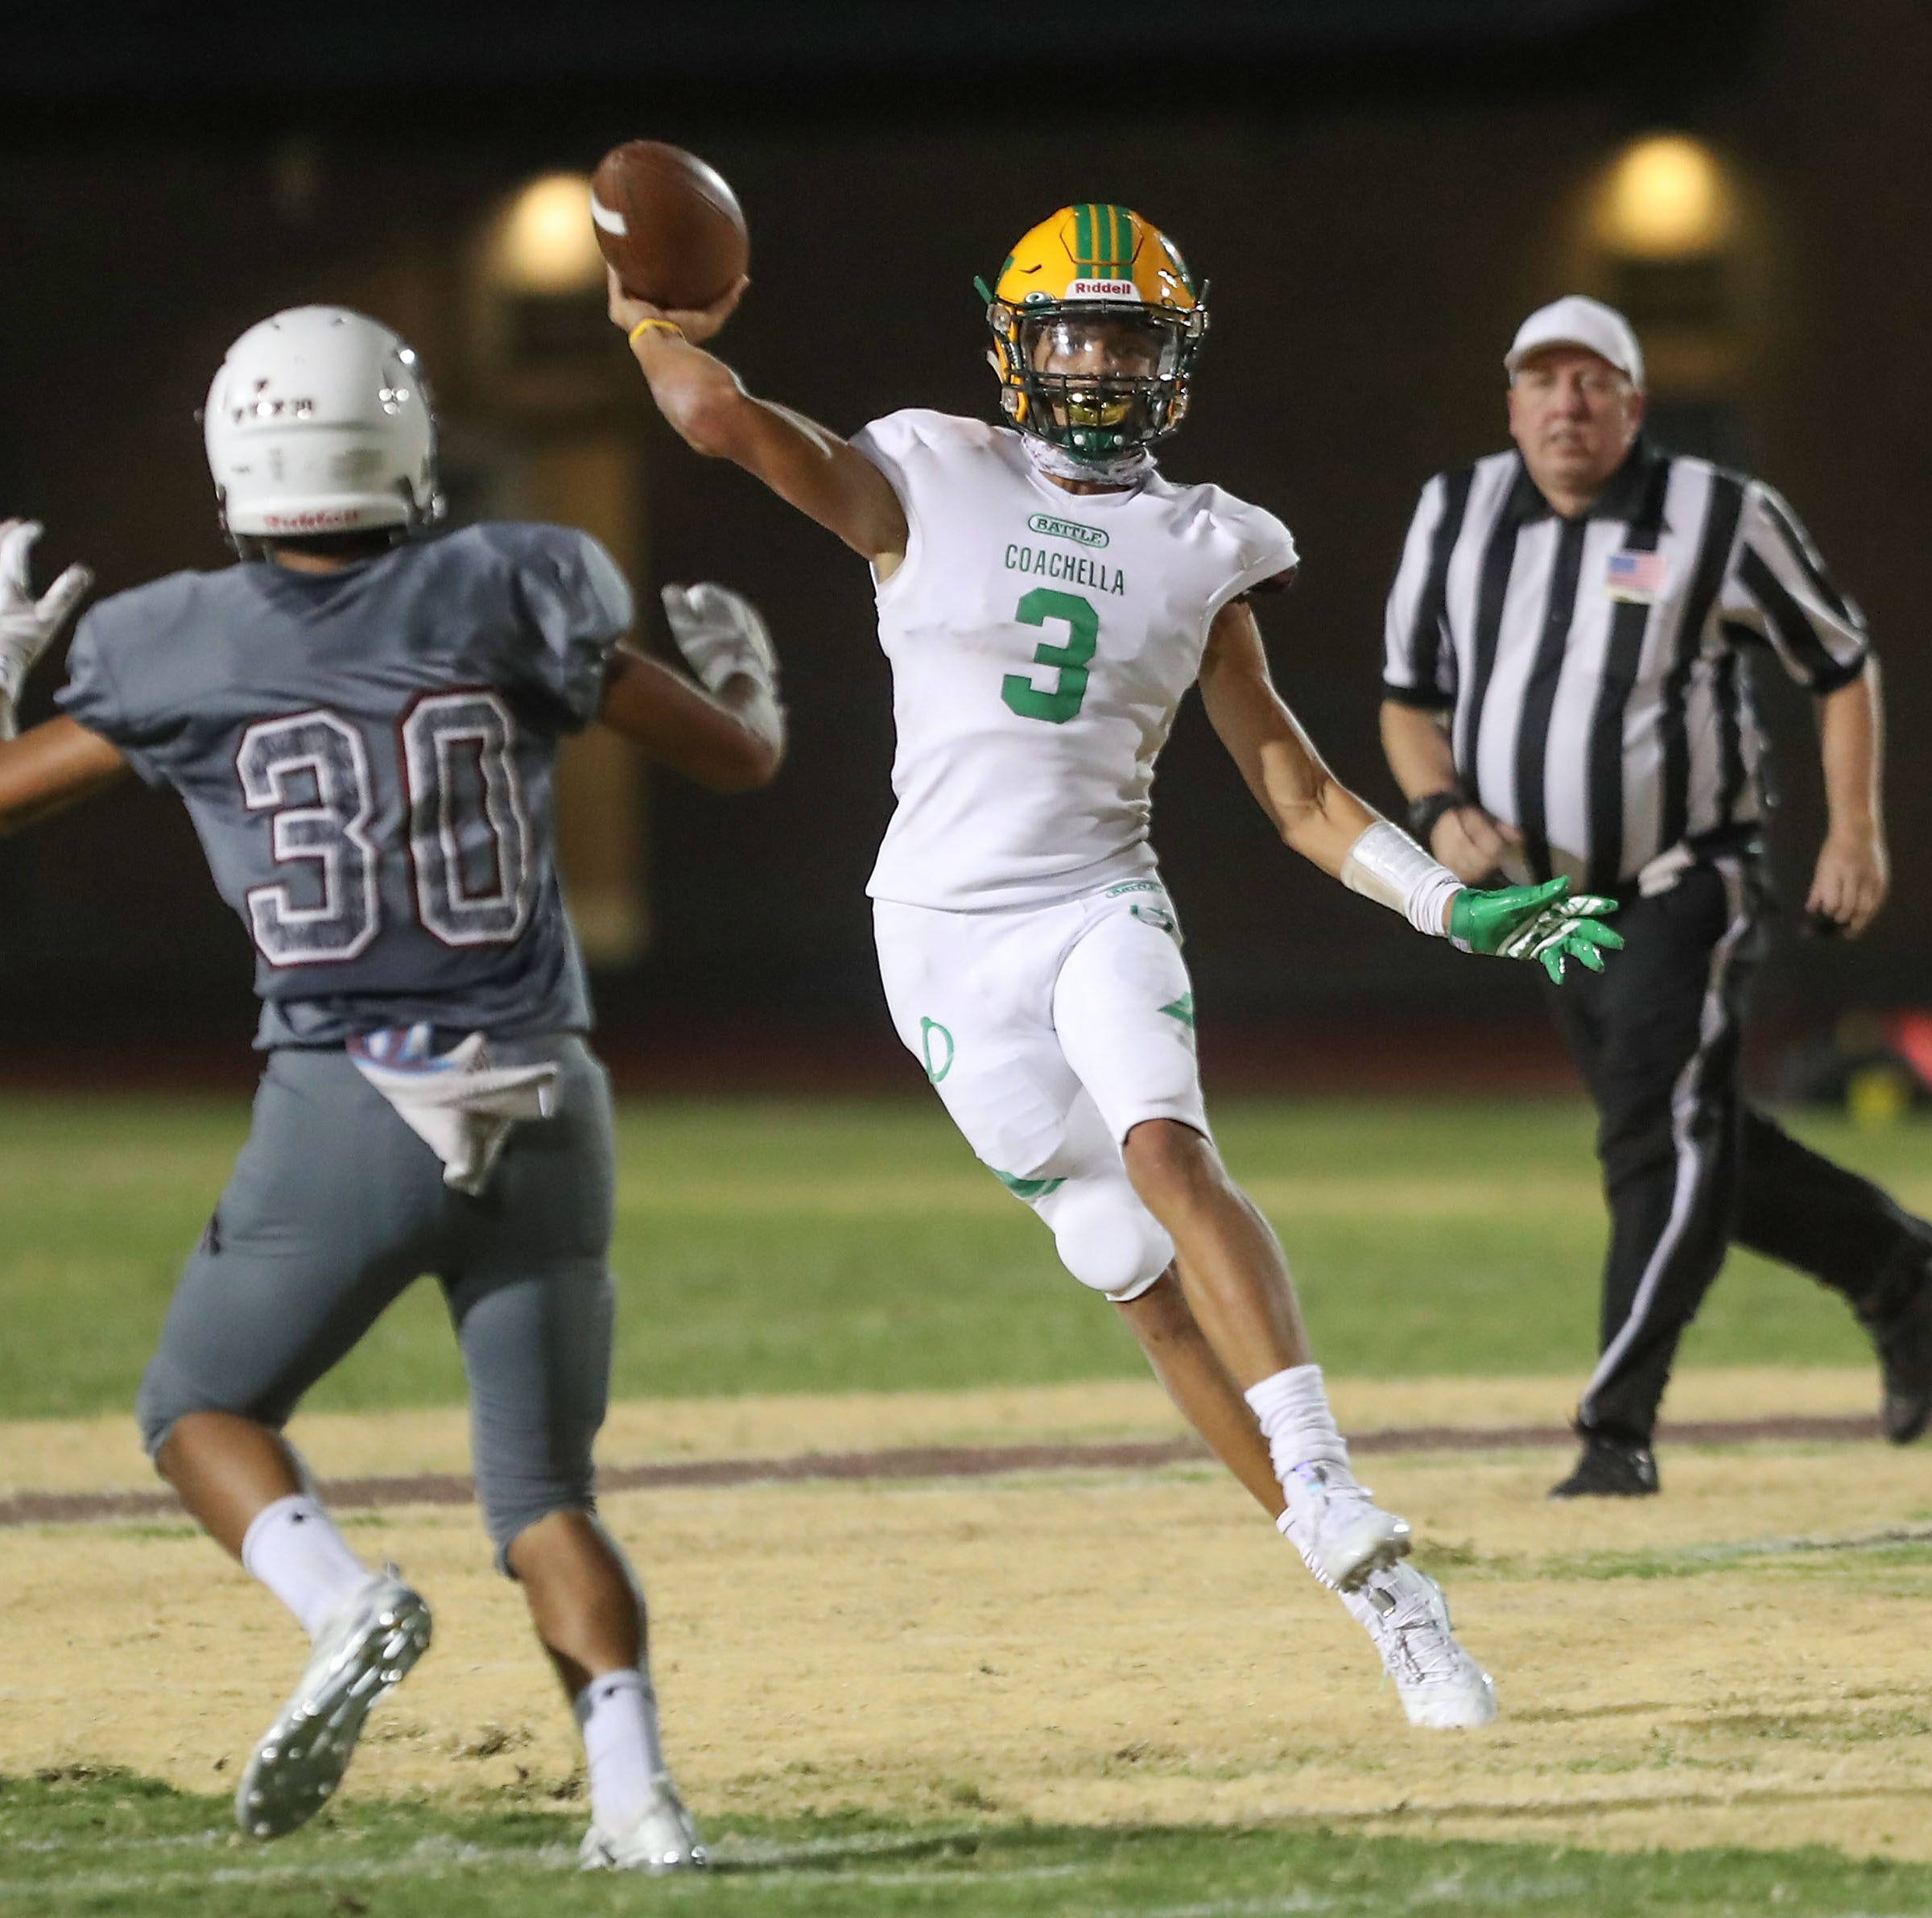 Coachella Valley High School athlete Donny Fitzgerald featured in Sports Illustrated